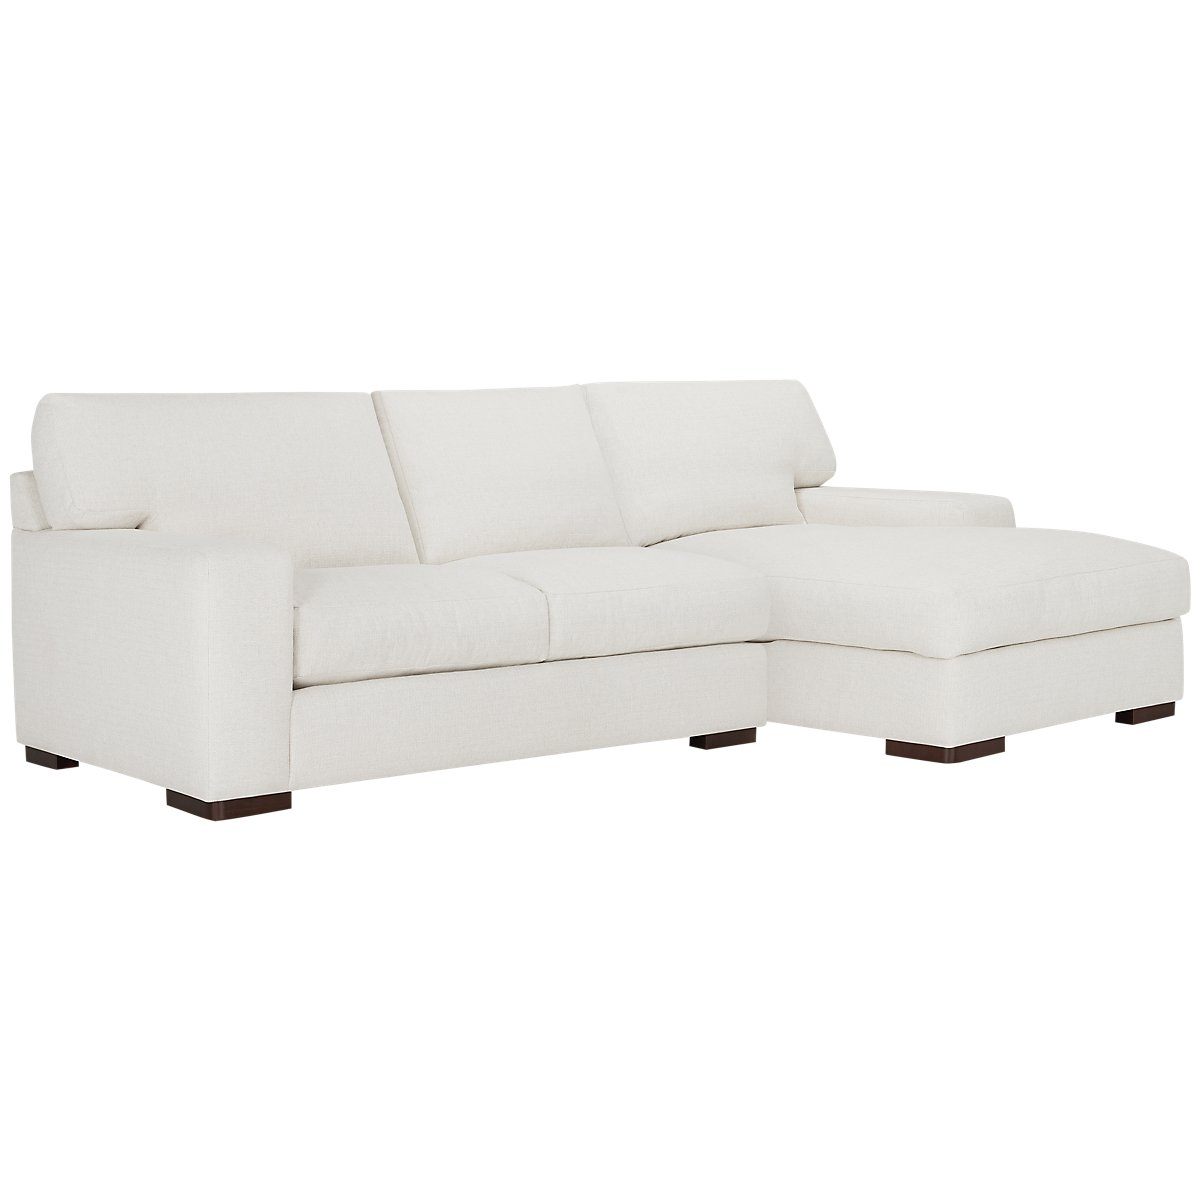 Veronica White Fabric Right Chaise Sectional